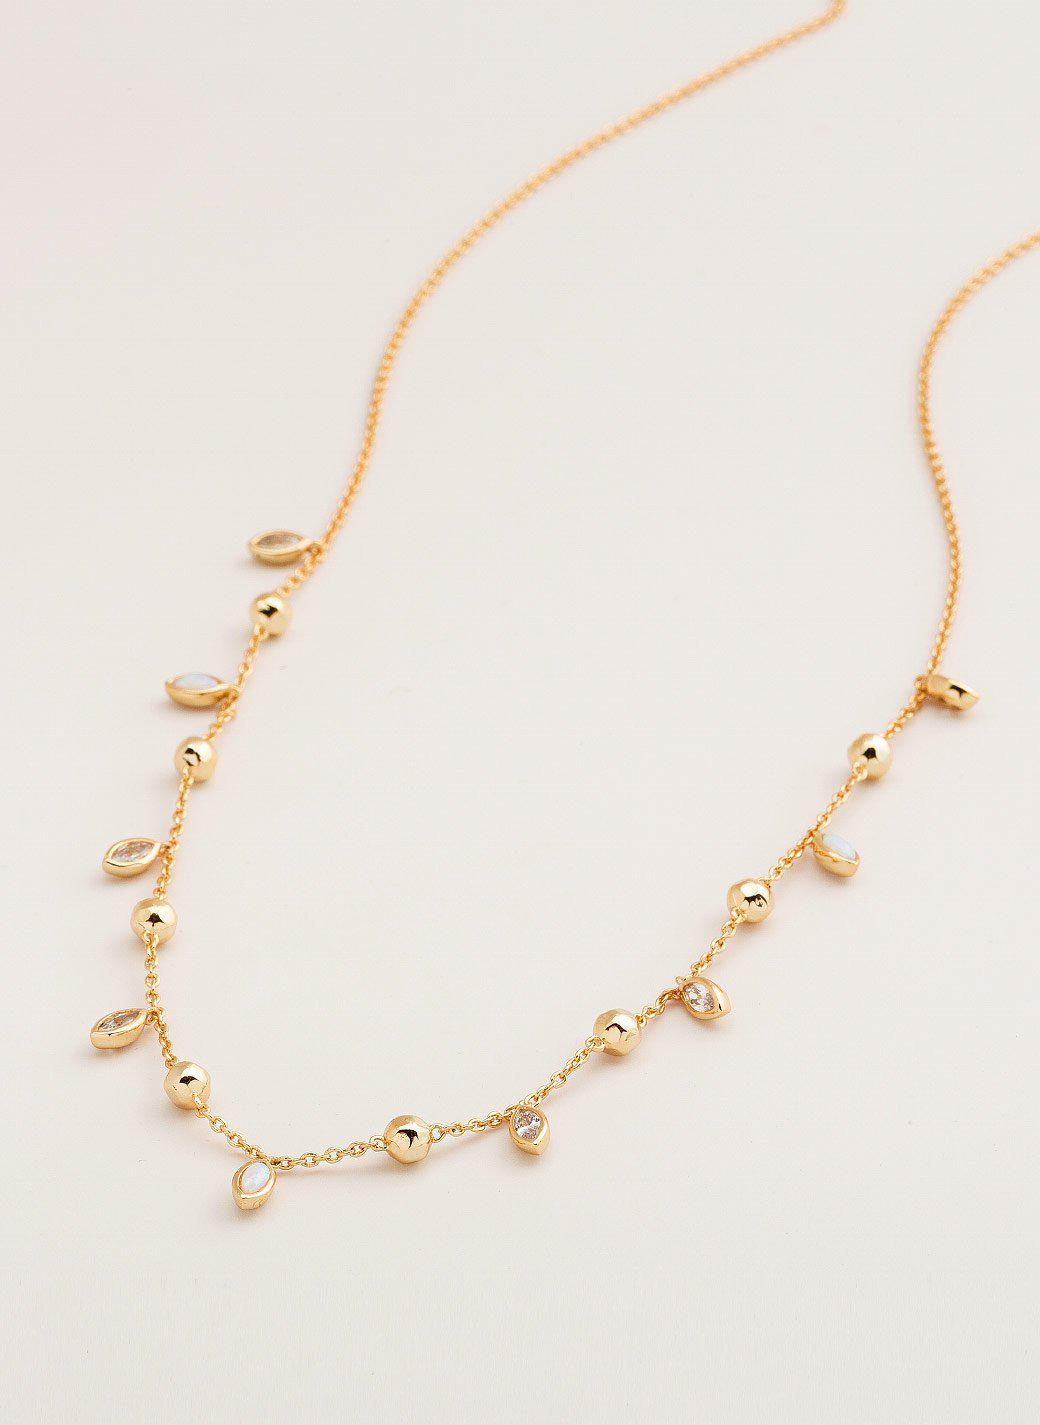 Rumi Confetti Adjustable Necklace in Metallic Gold Gorjana GgEc2Jz